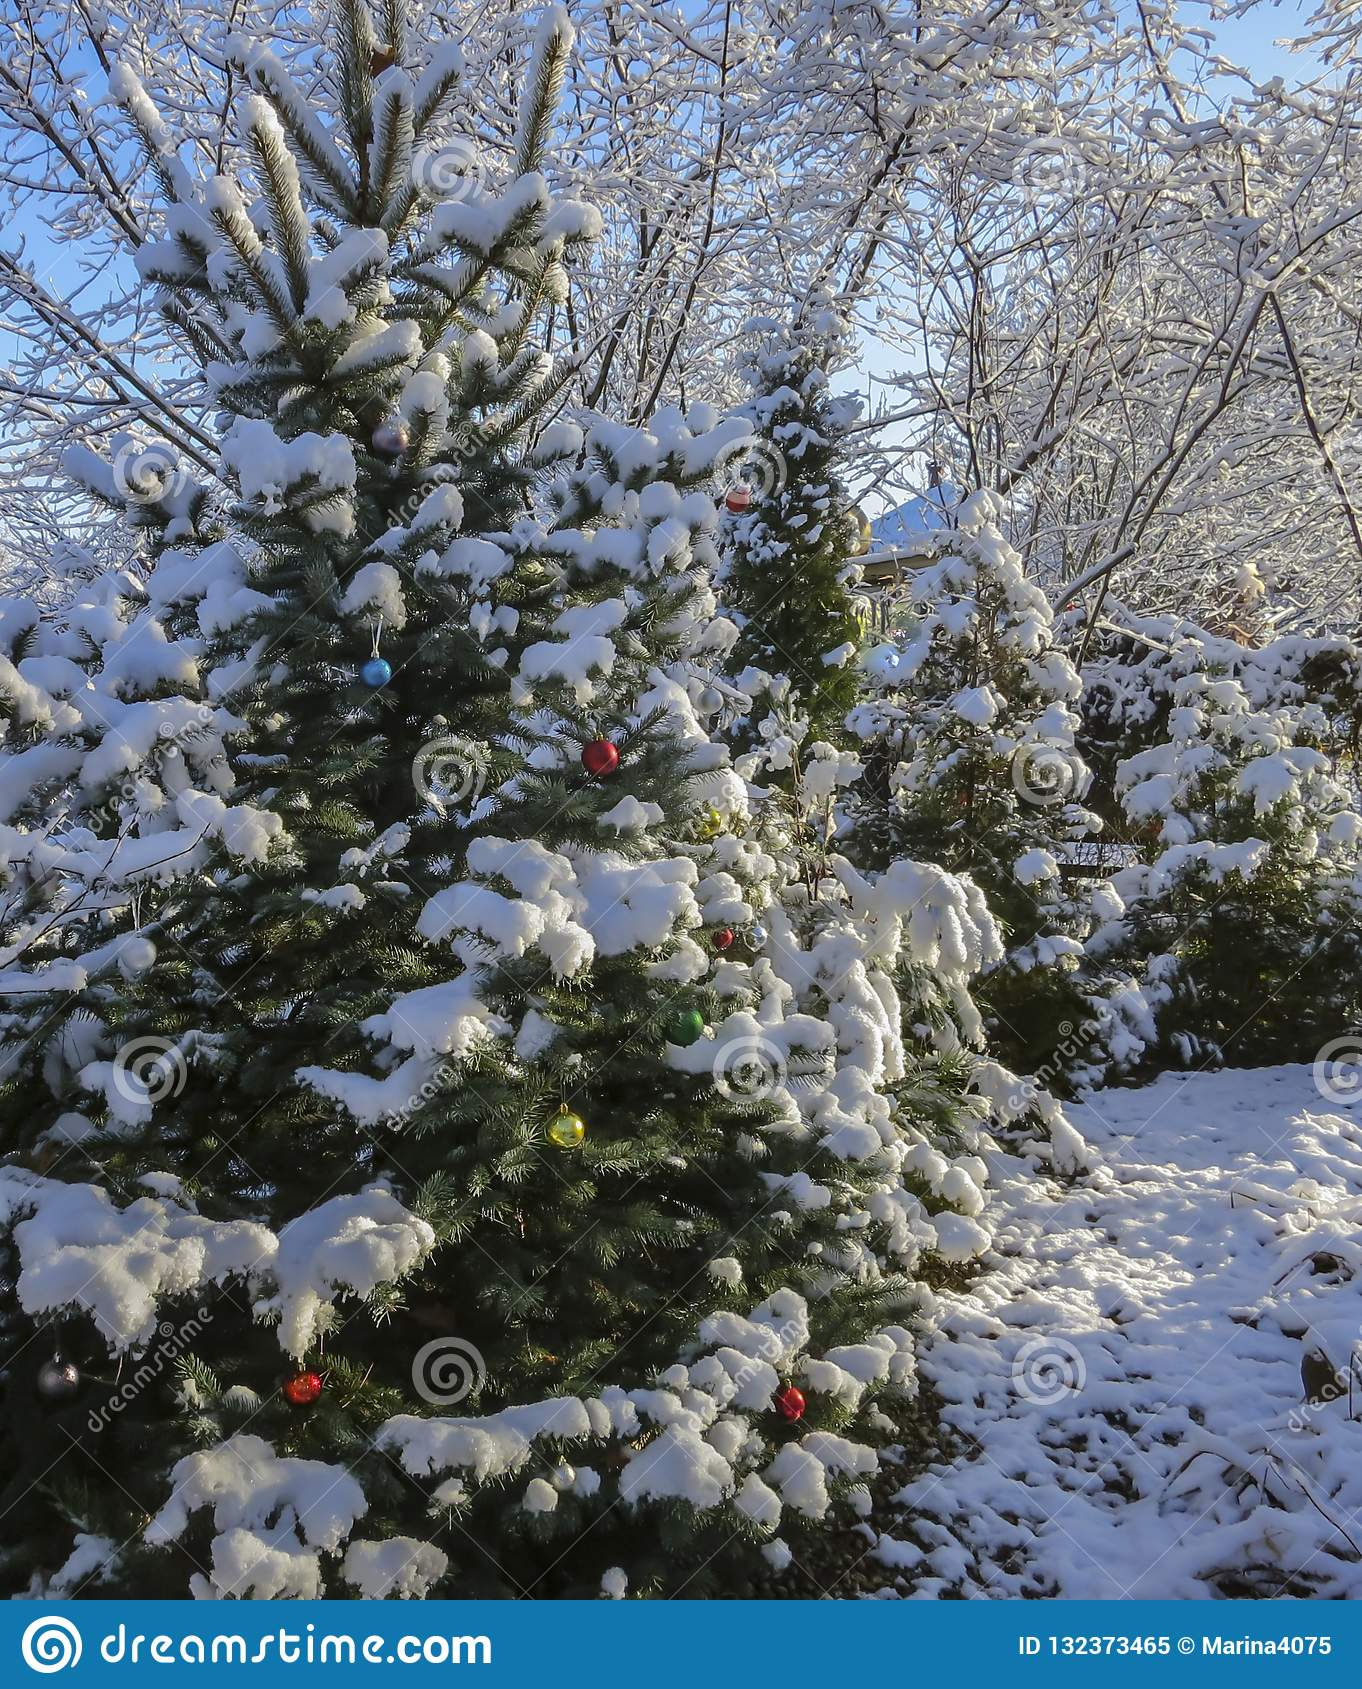 The Christmas tree in the garden is decorated with Christmas decorations, its branches and needles